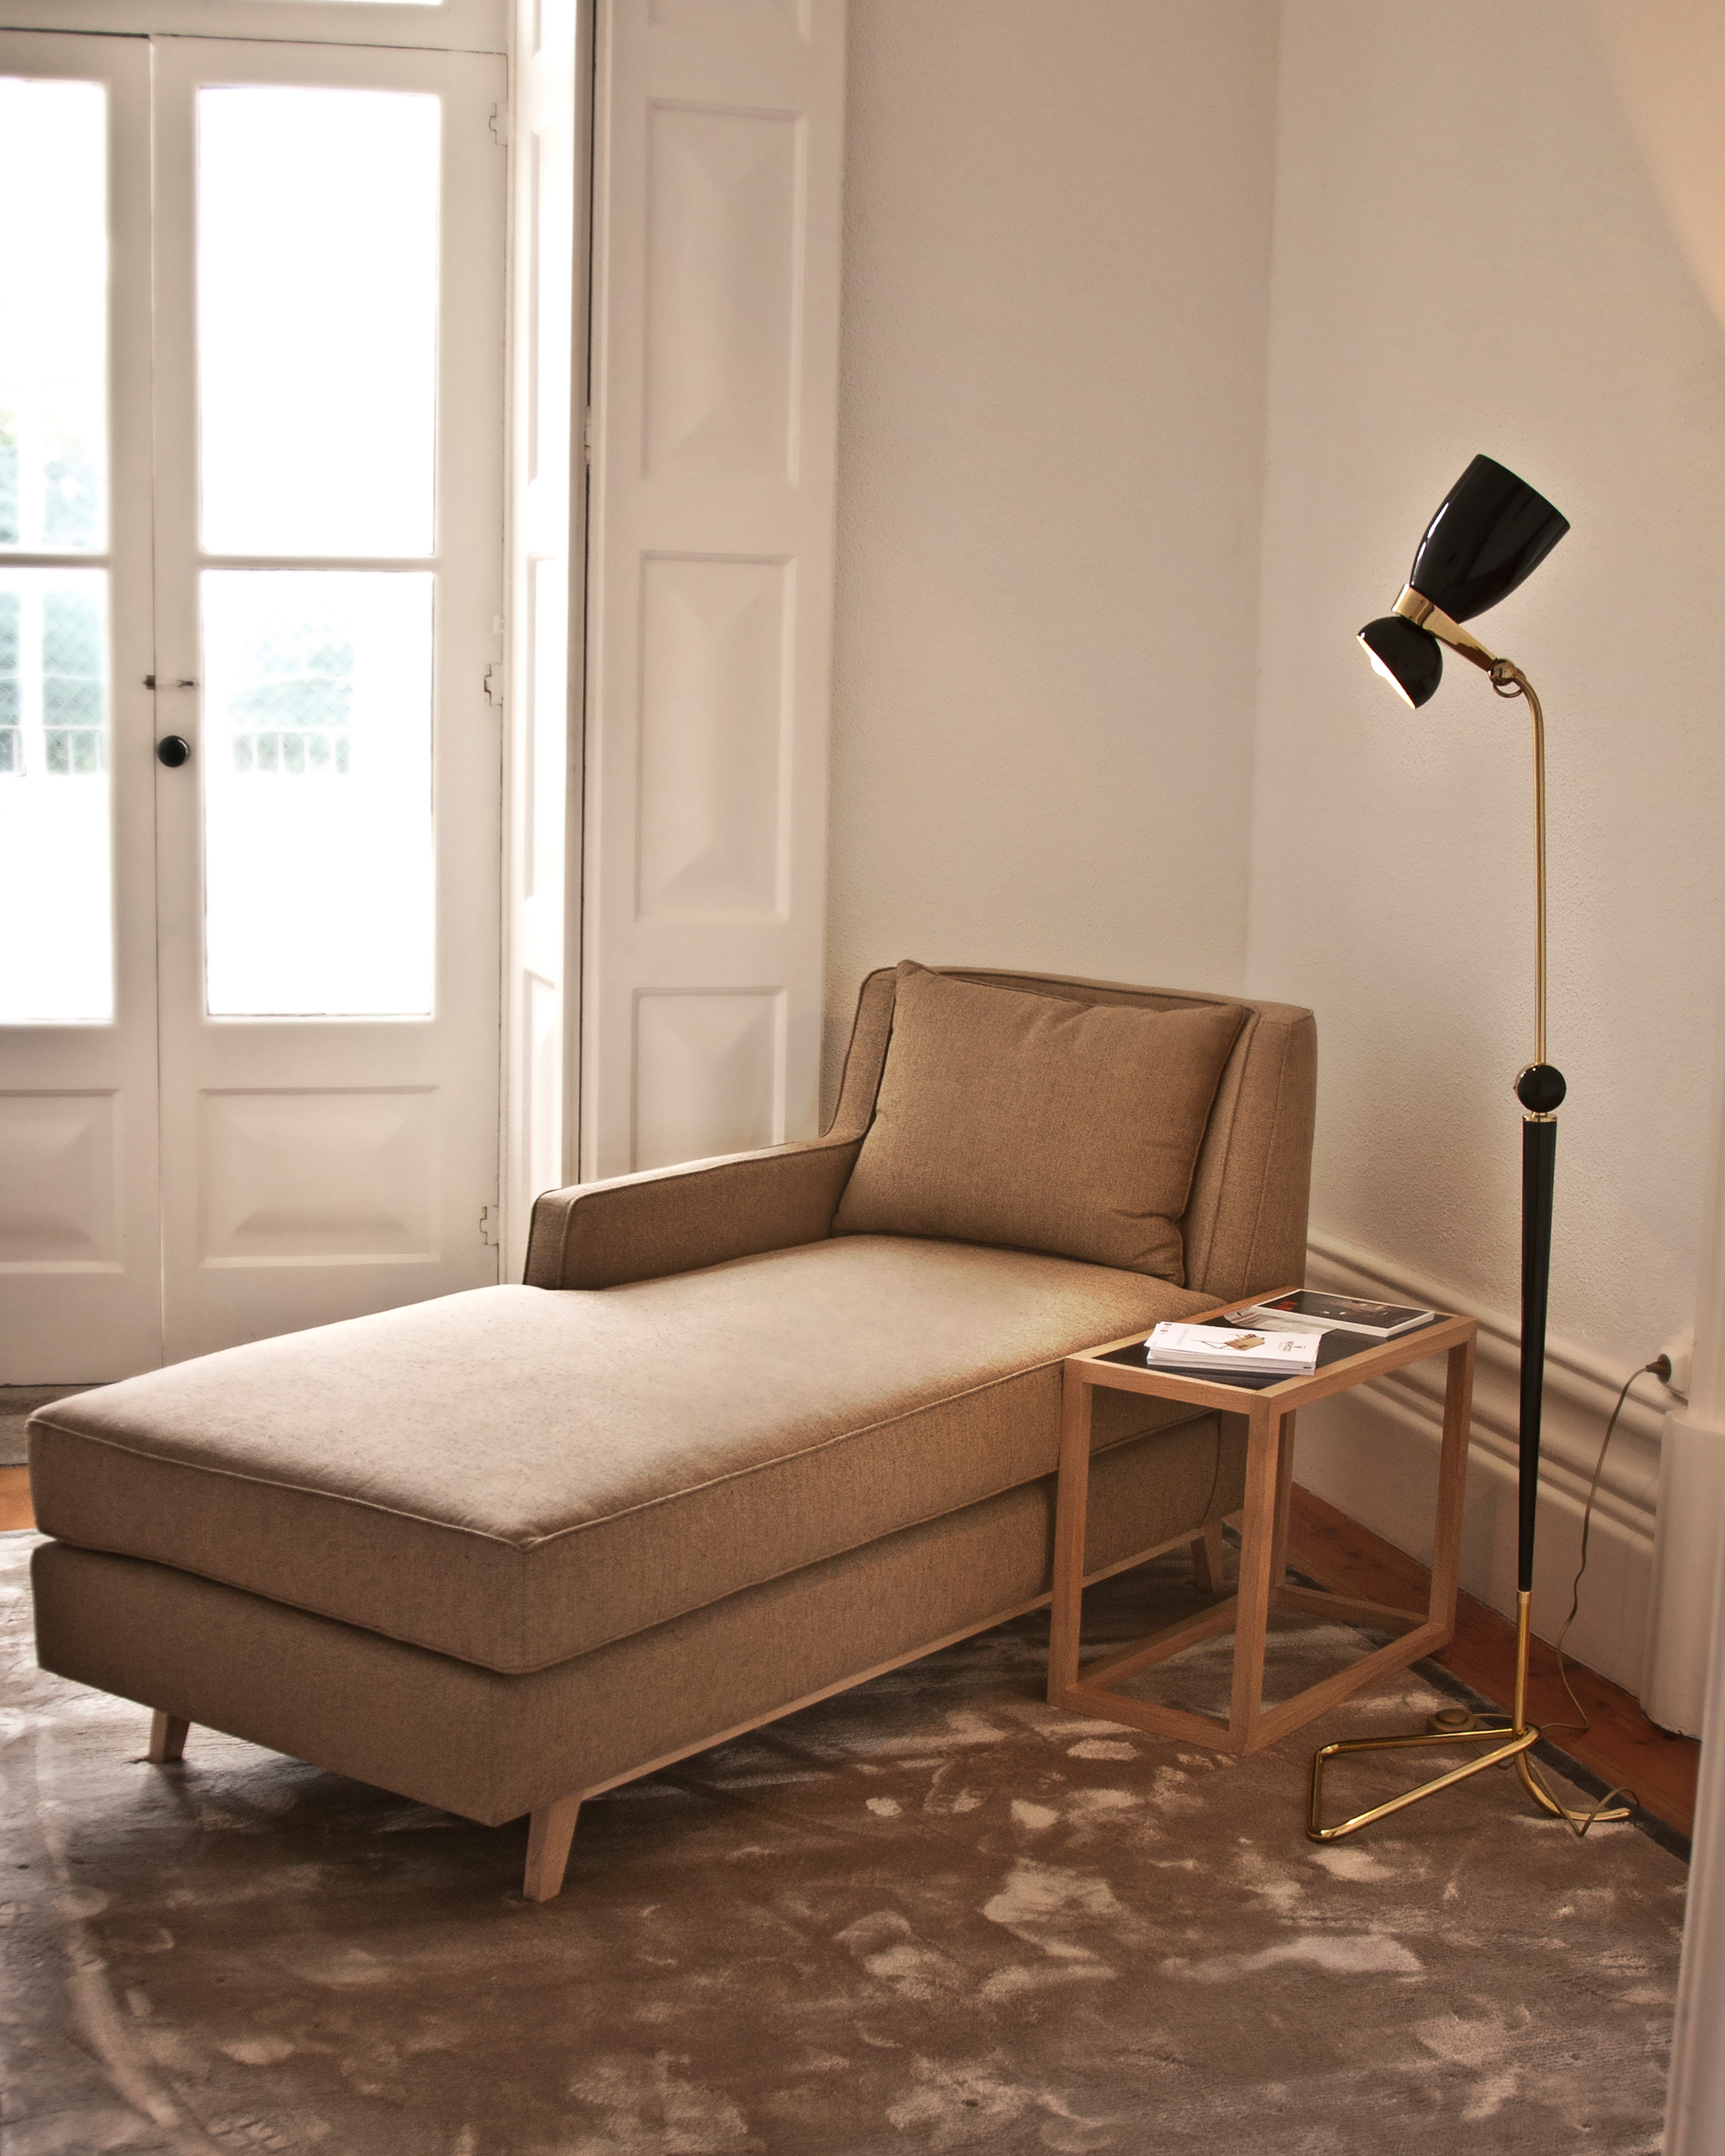 Modern Lighting Ideas Find All About These Minimalist Floor Lamps modern lighting ideas Modern Lighting Ideas: Find All About These Minimalist Floor Lamps Modern Lighting Ideas Find All About These Minimalist Floor Lamps 2